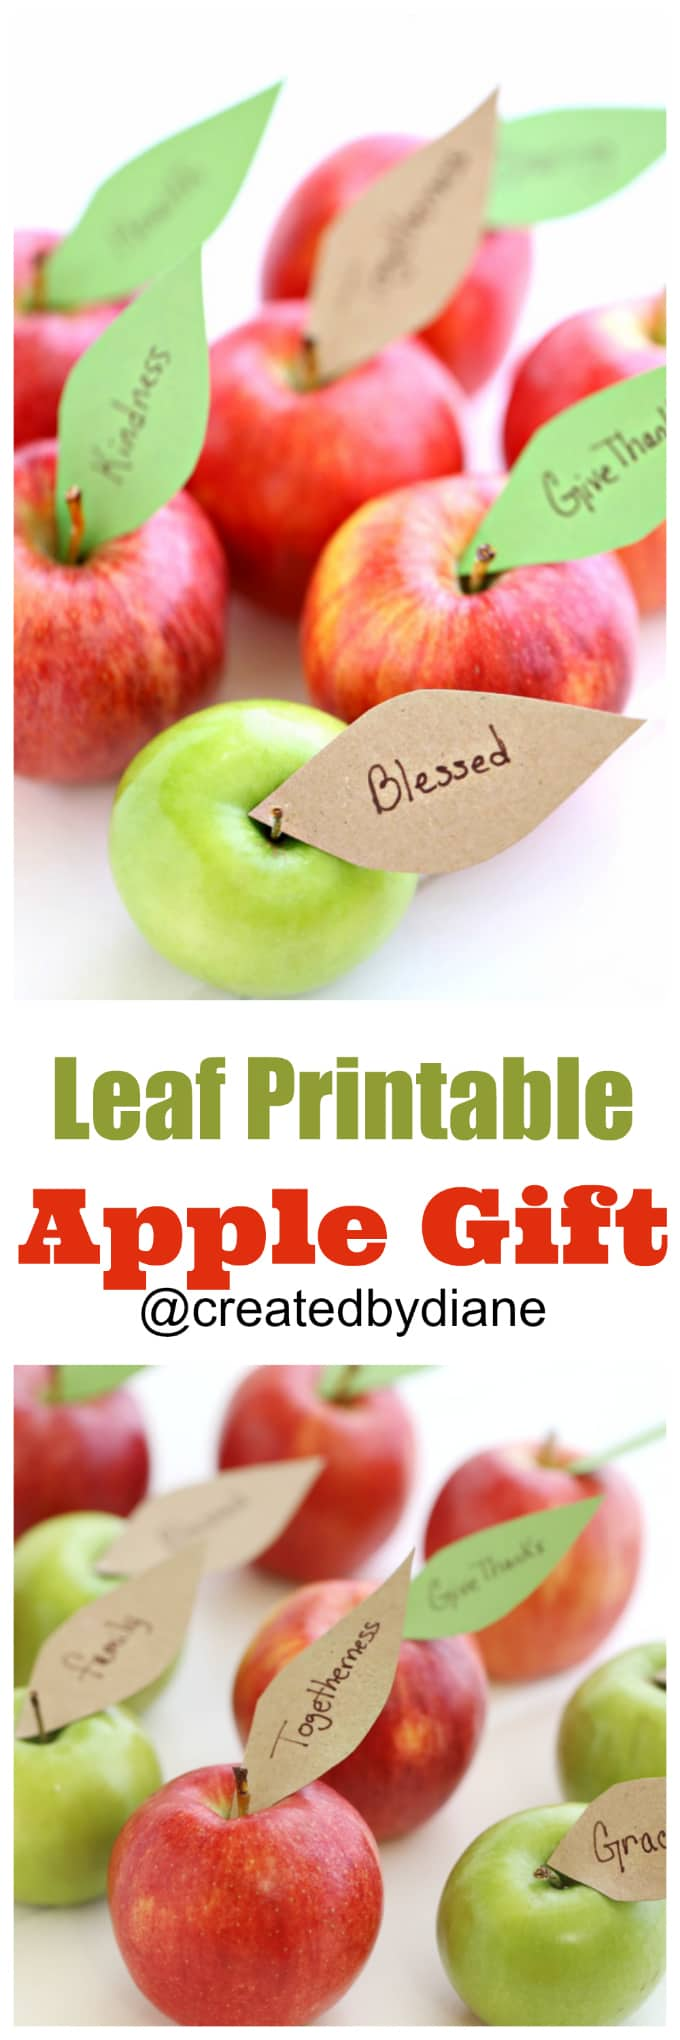 leaf-printable-apple-gift-createdbydiane-thanksgiving-place-cards-teacher-gift-food-gift